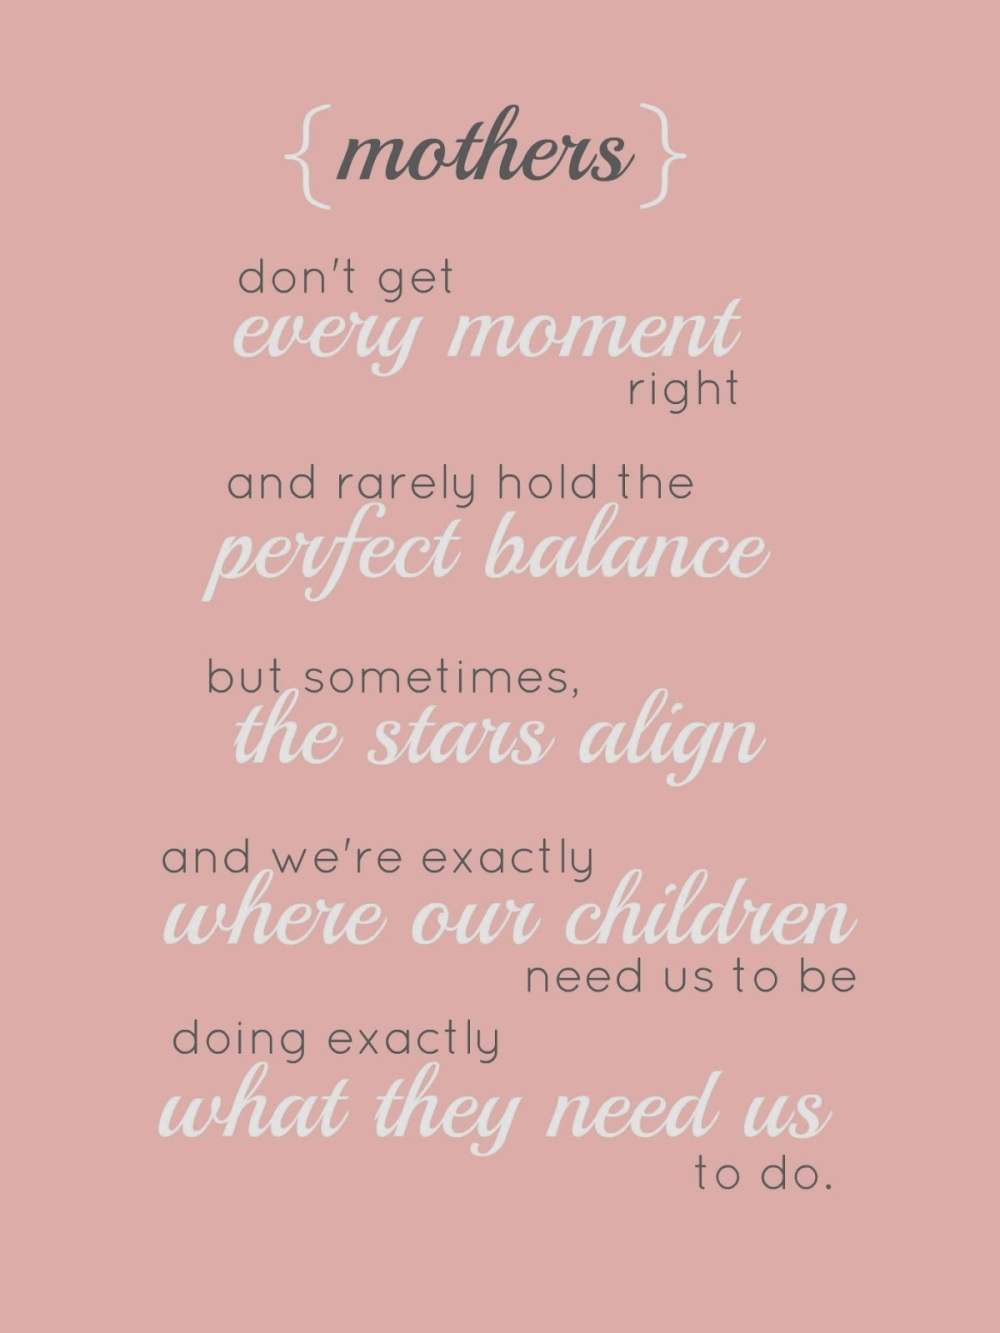 happy-mothers-day-quotes-from-daughter-12